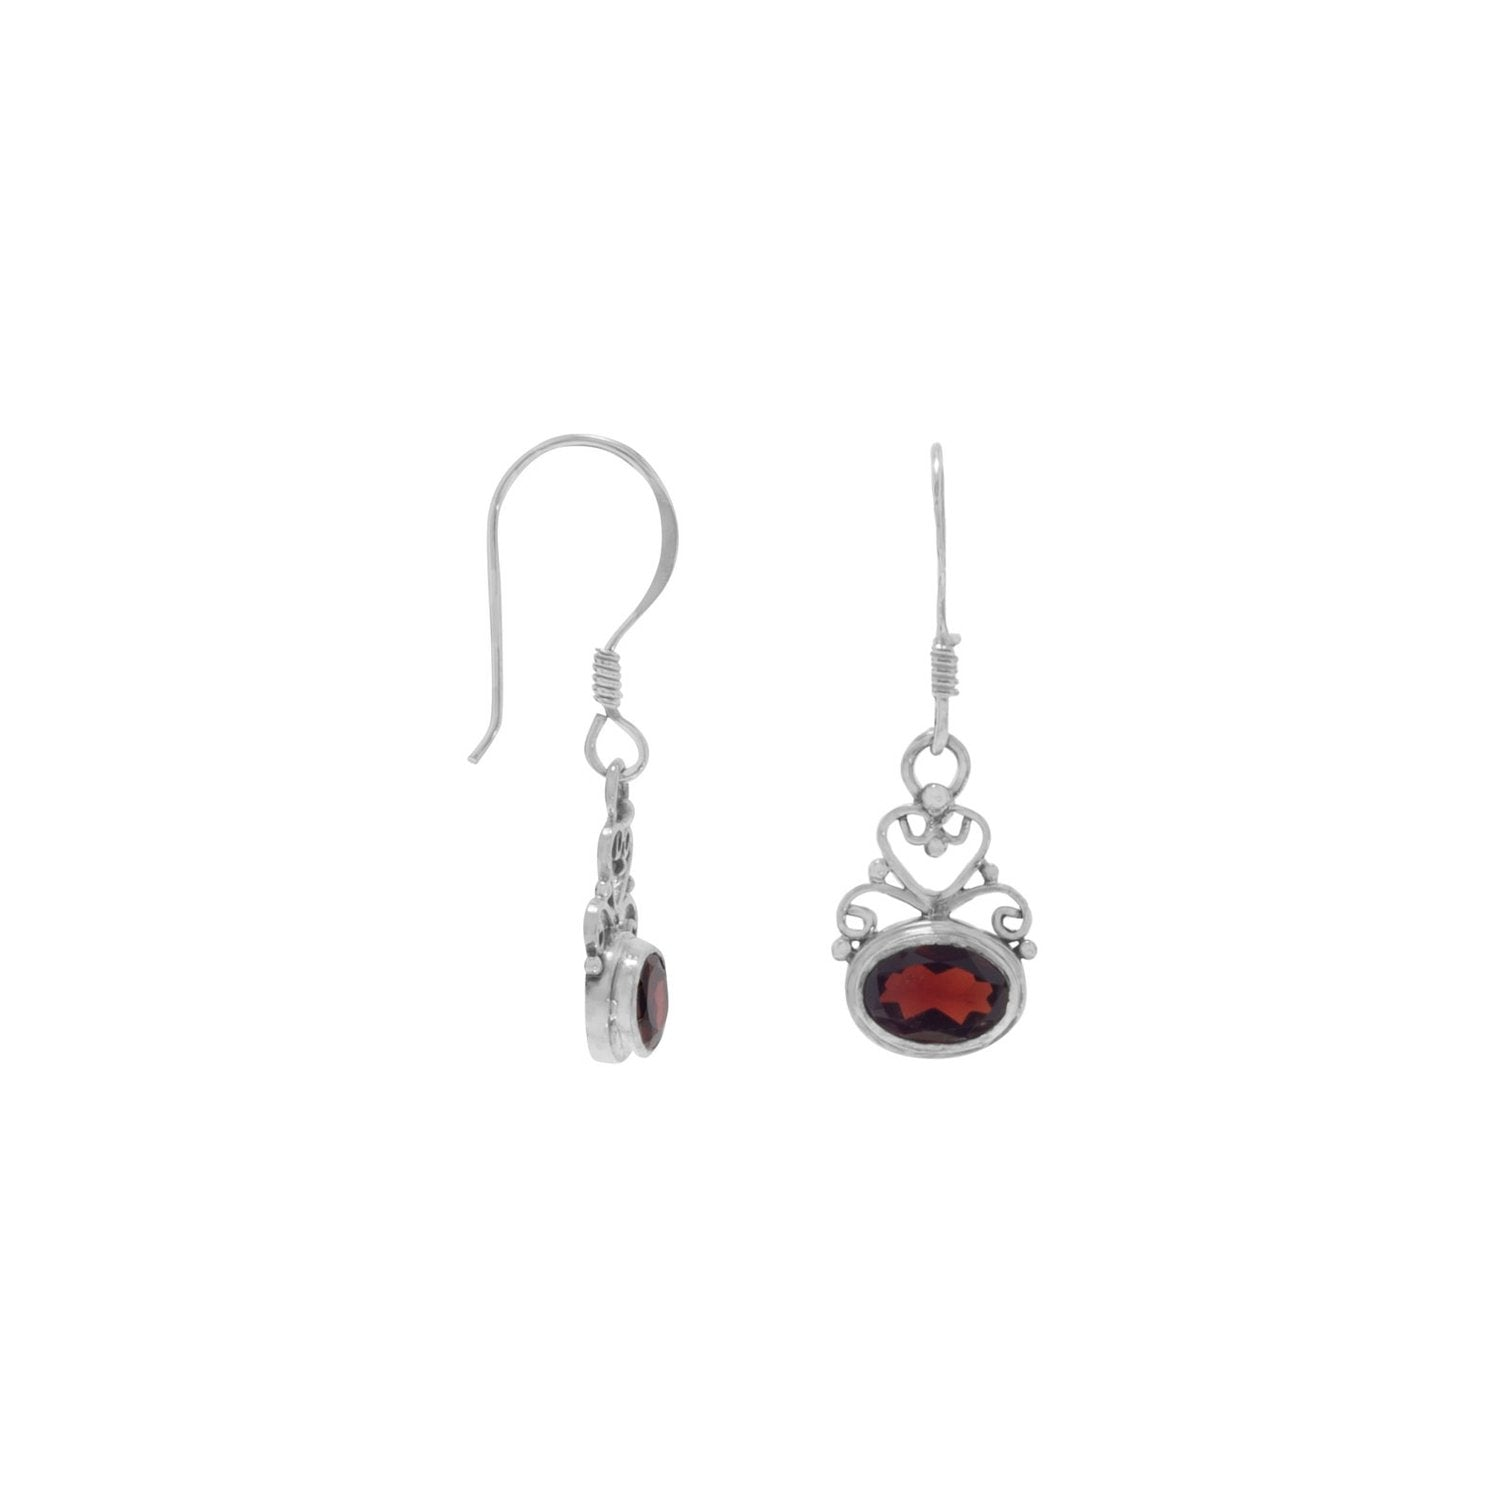 Scroll Design and Garnet Earrings - the-southern-magnolia-too